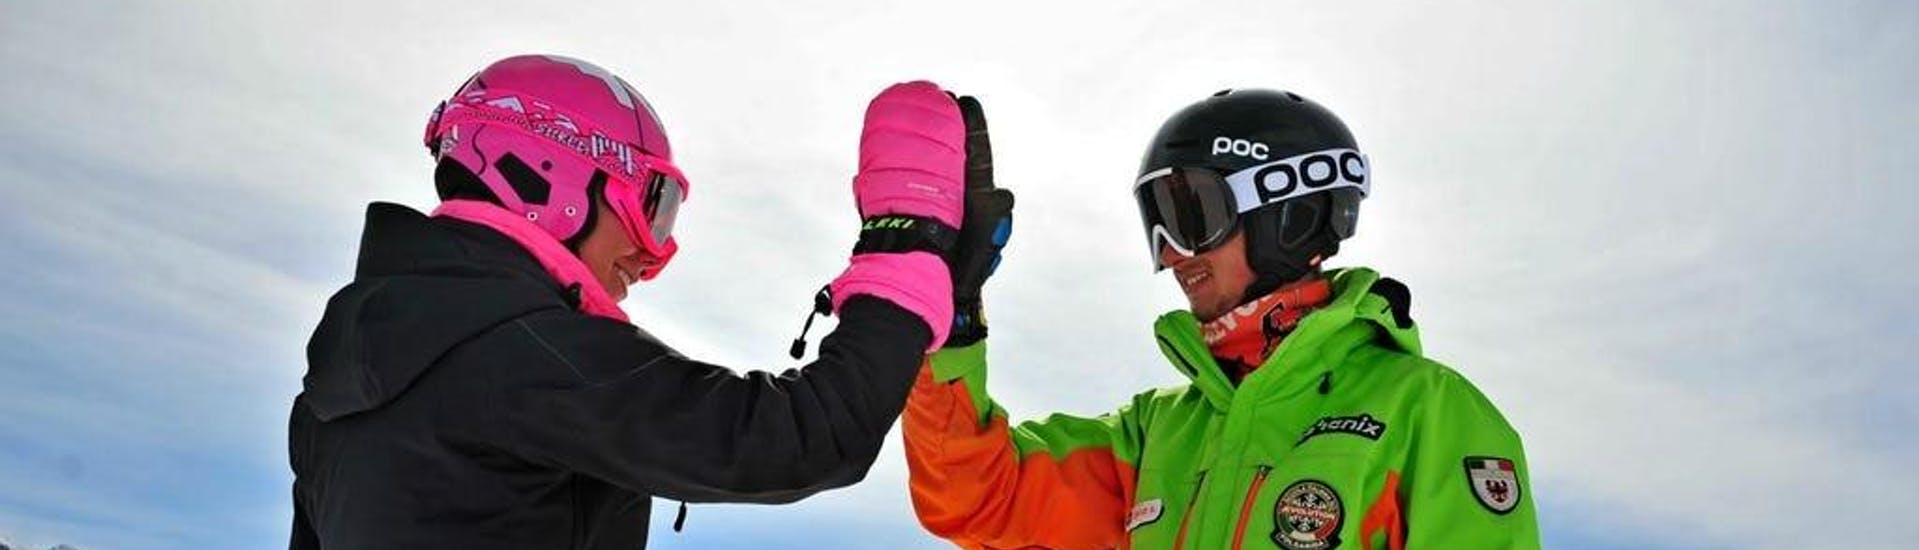 The Private Off-Piste Skiing Tours - All Levels are just finished, the student and the ski instructor of the Ski School Scuola di Sci Aevolution Folgarida are high-fiving.